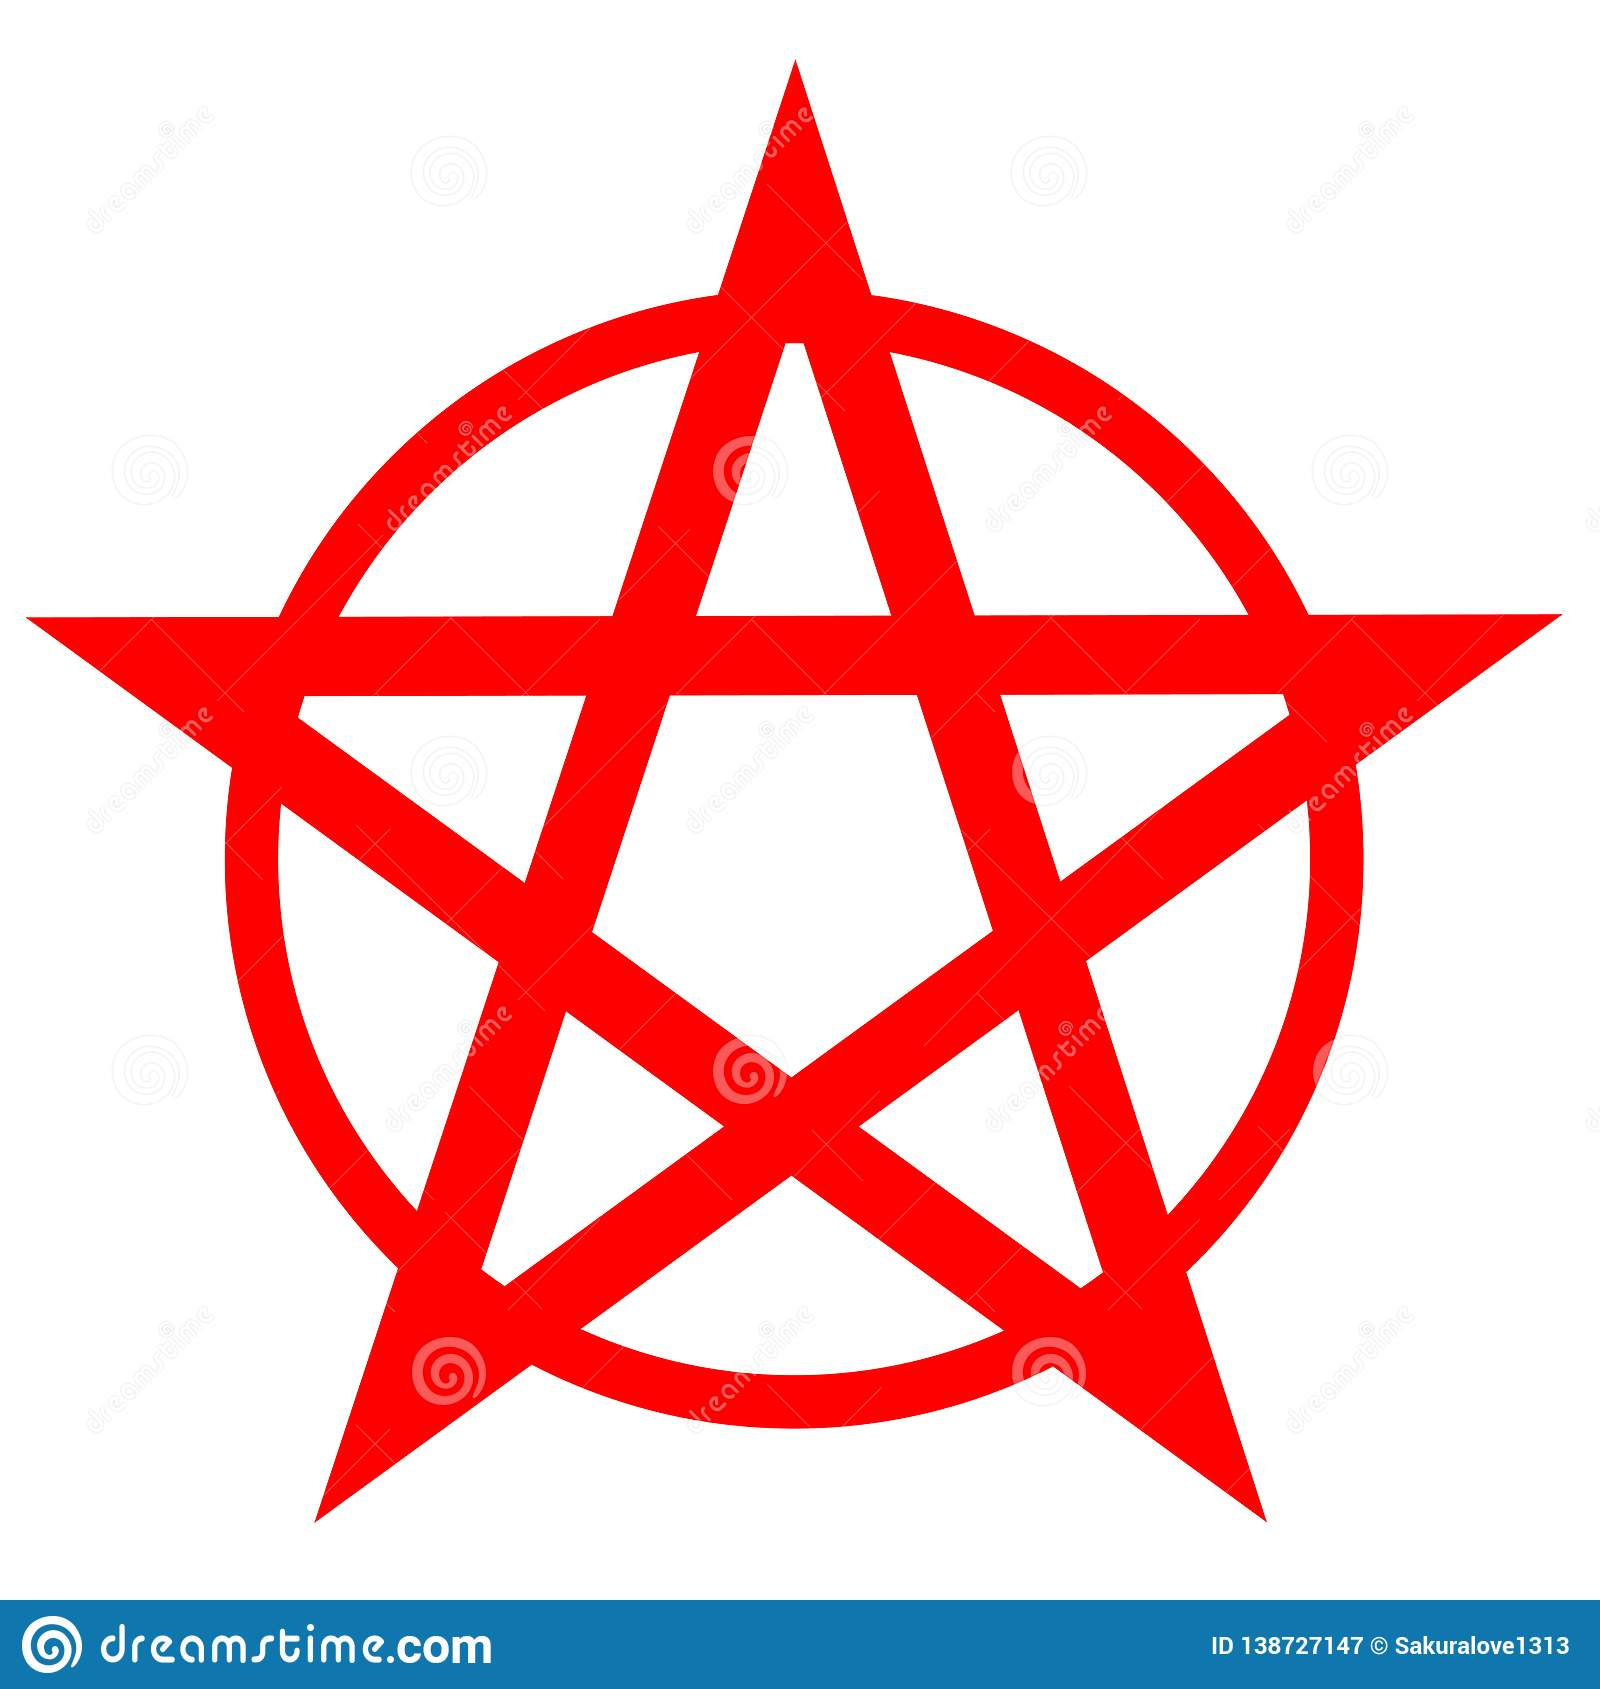 cb167063db5ec Pentagram or pentalpha or pentangle. dot work ancient pagan symbol of five-pointed  star